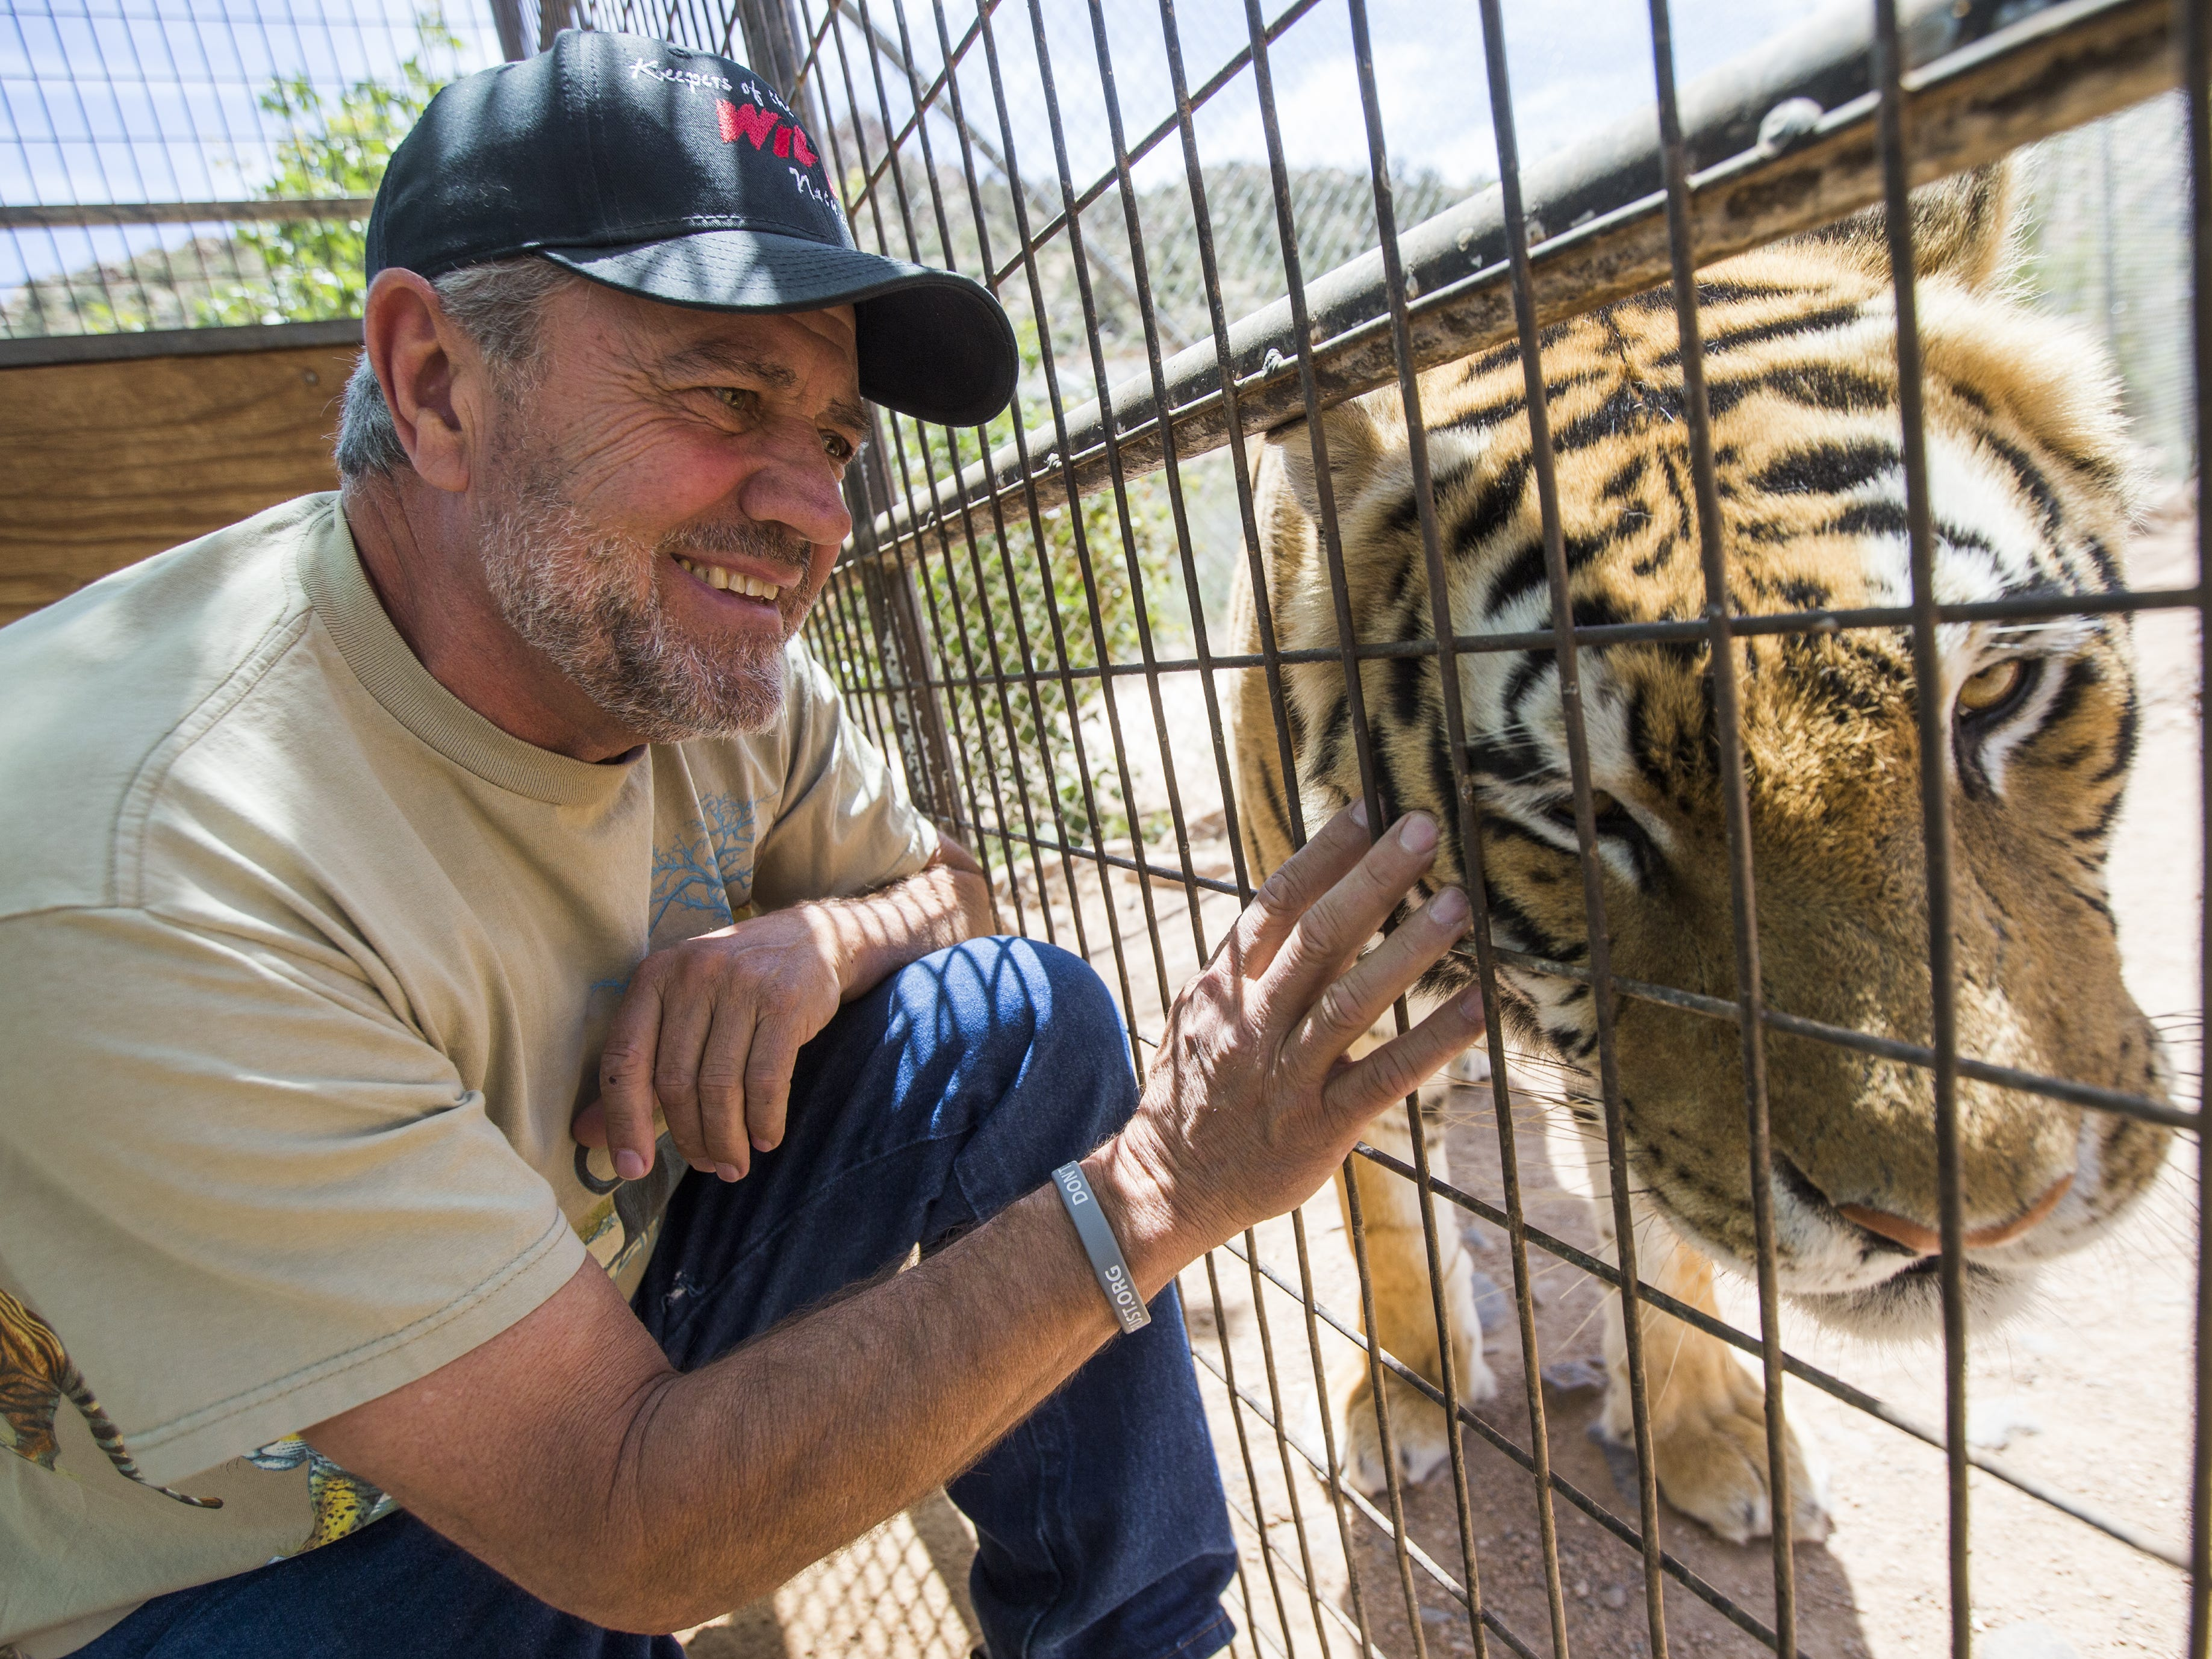 Keepers of the Wild founder Jonathan Kraft touches Moses, a Bengal tiger, in Valentine, Ariz., on May 27, 2015. The nonprofit sanctuary for retired Las Vegas show tigers and other exotic animals is looking to expand north of Kingman.